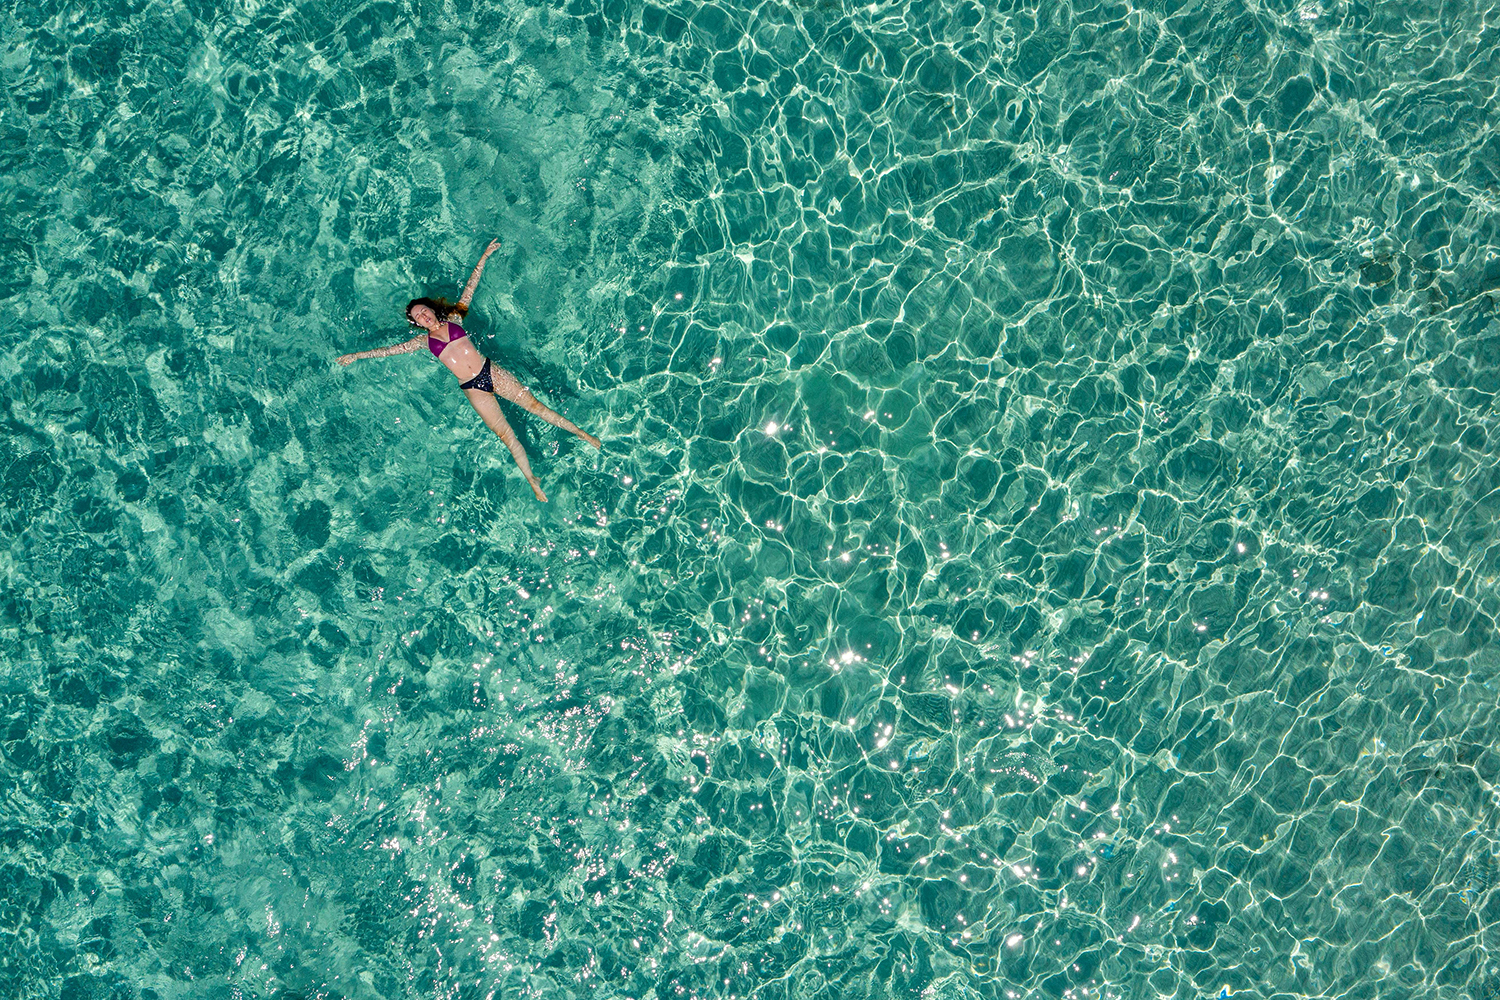 A woman relaxes on the sea off the small island of Chrysi, south of Crete, Greece, on July 26. ARIS MESSINIS/AFP via Getty Images